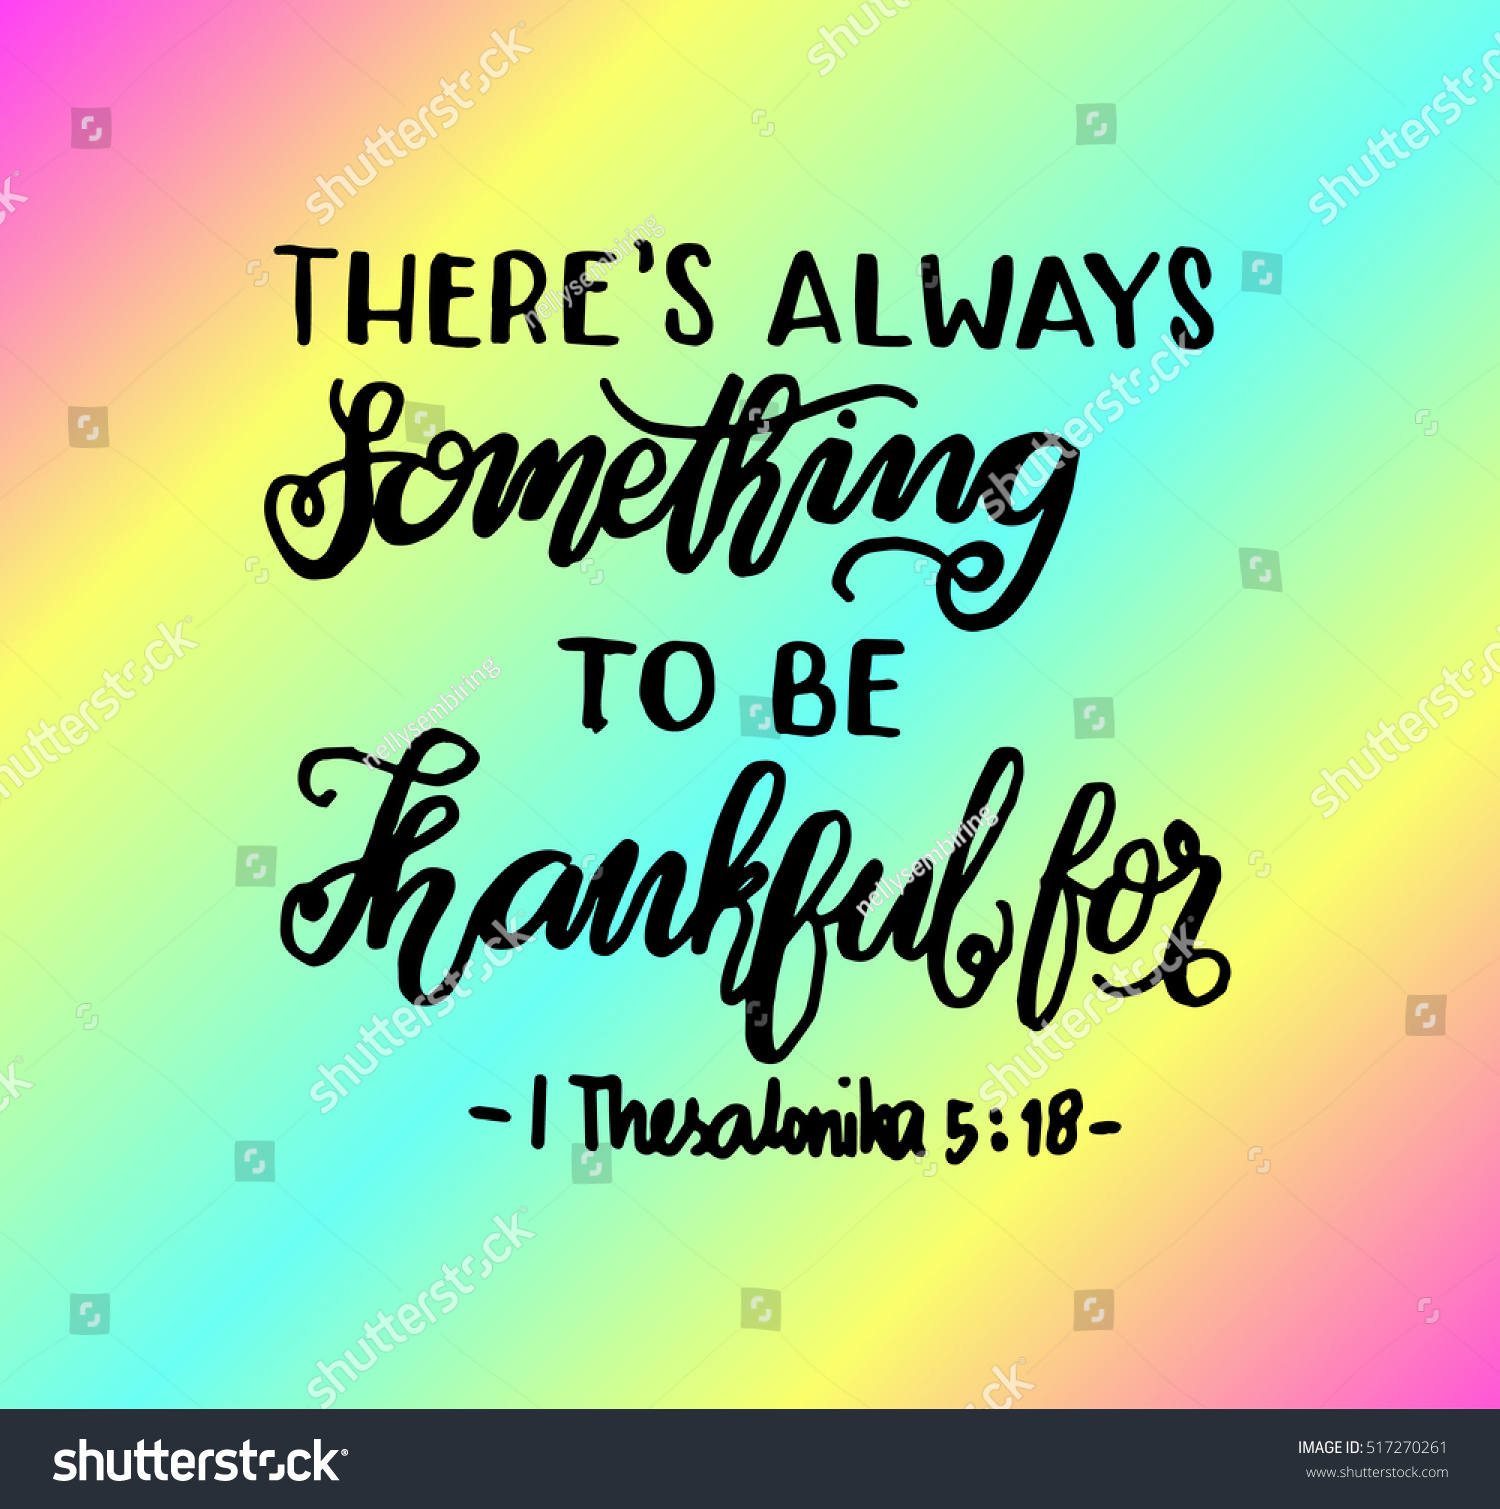 there always something be thankful for stock vector royalty free